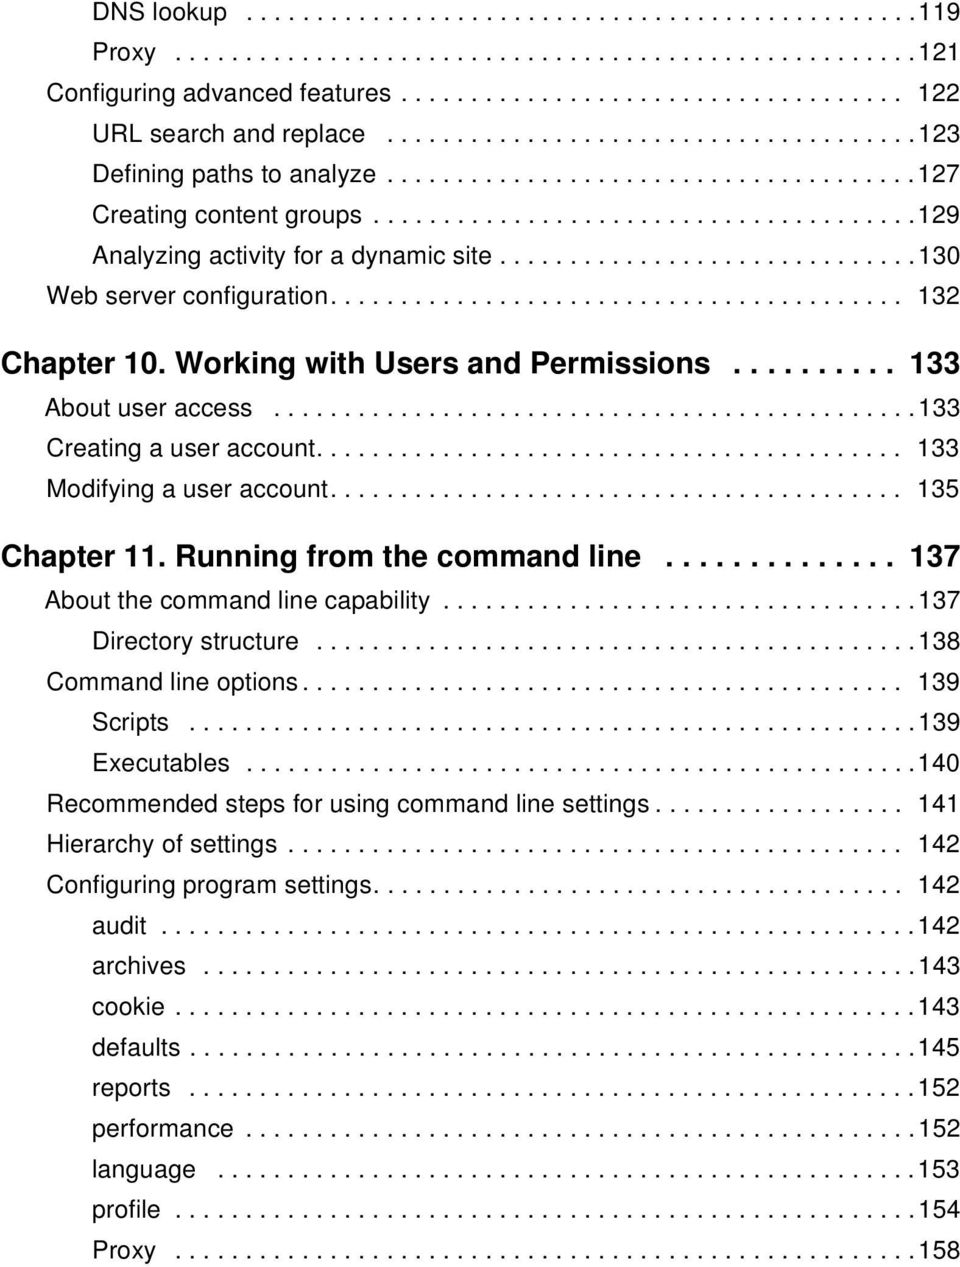 .............................130 Web server configuration......................................... 132 Chapter 10. Working with Users and Permissions.......... 133 About user access.